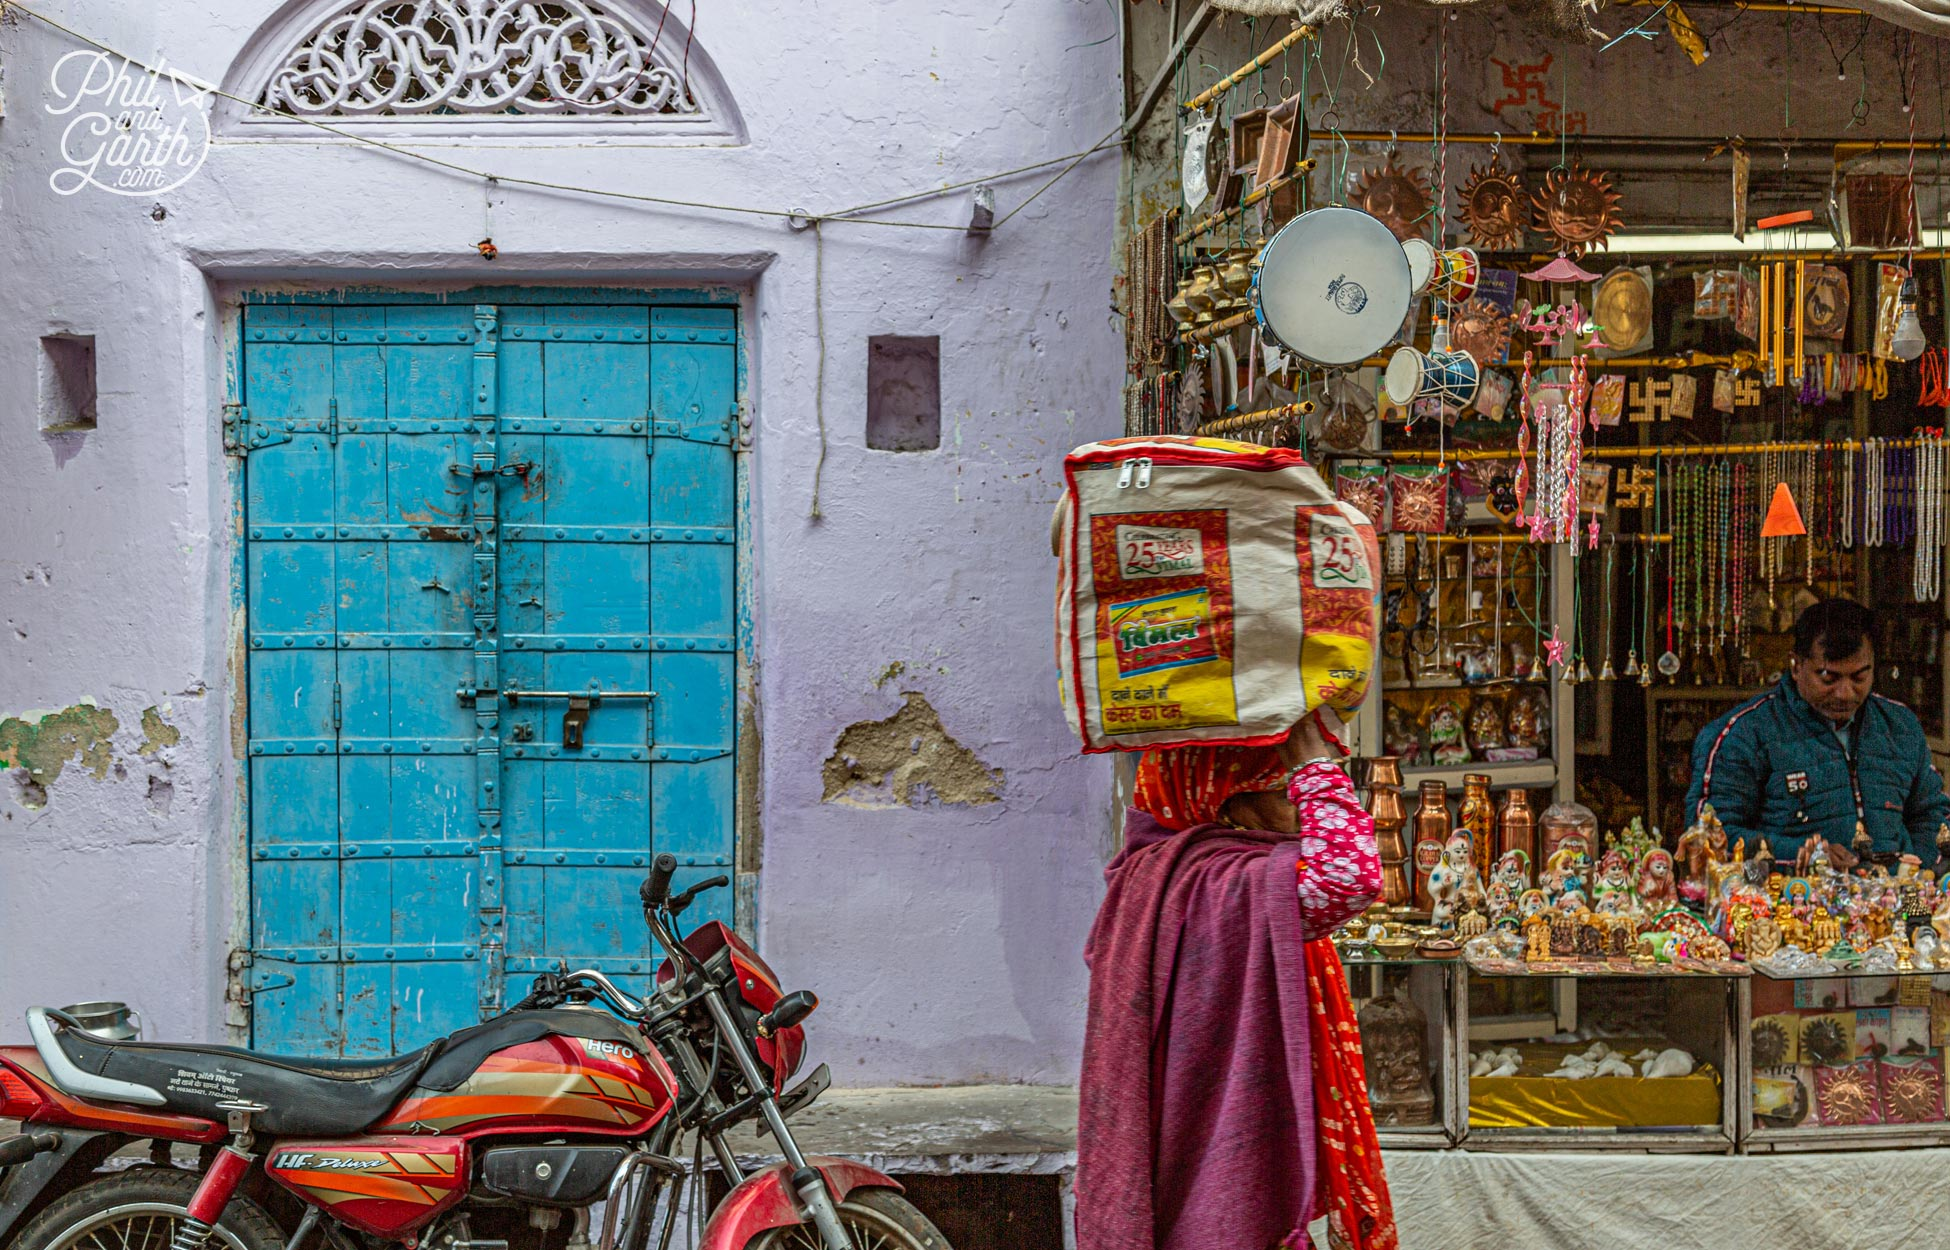 Places to visit in Pushkar - Look out for all the colourful doors